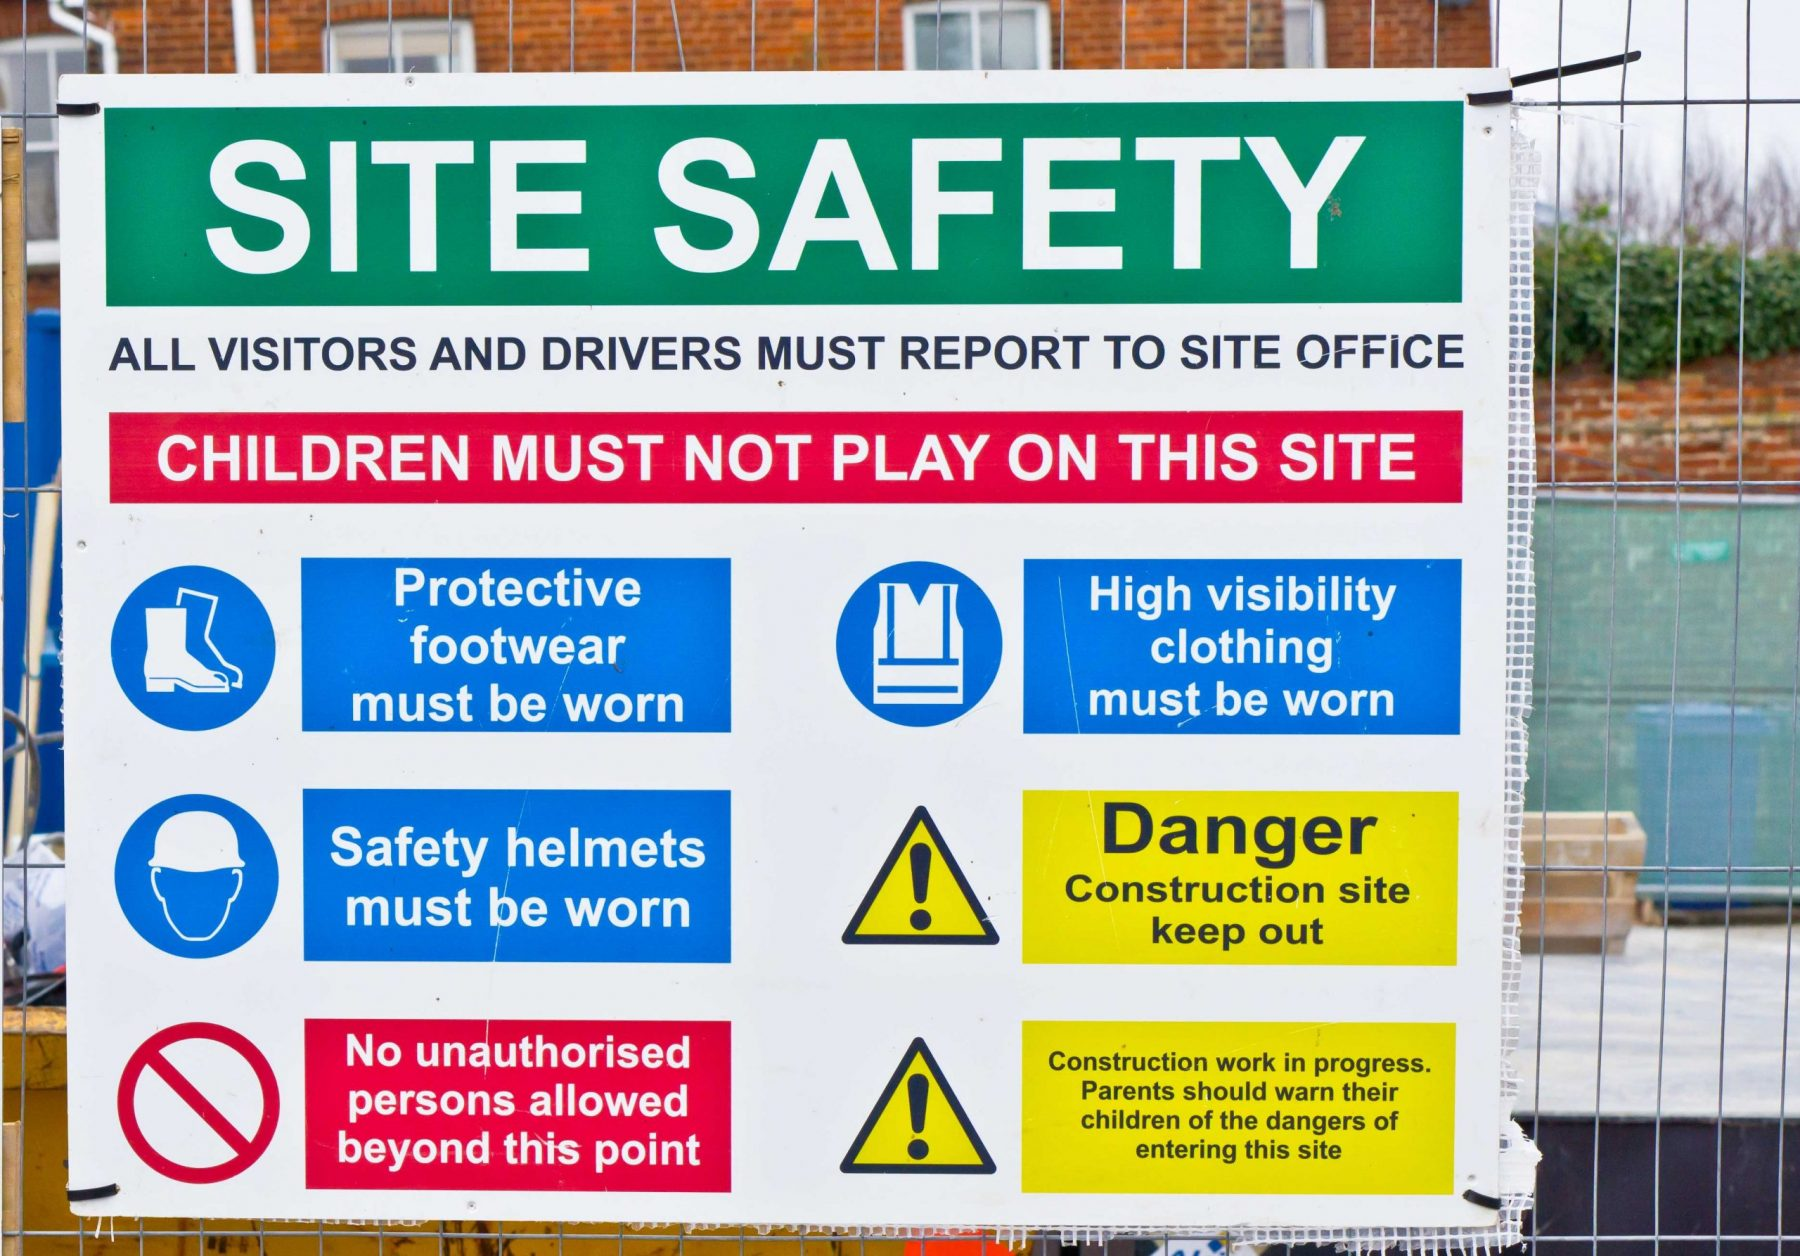 An information sign that helps regulate the safety on a construction site